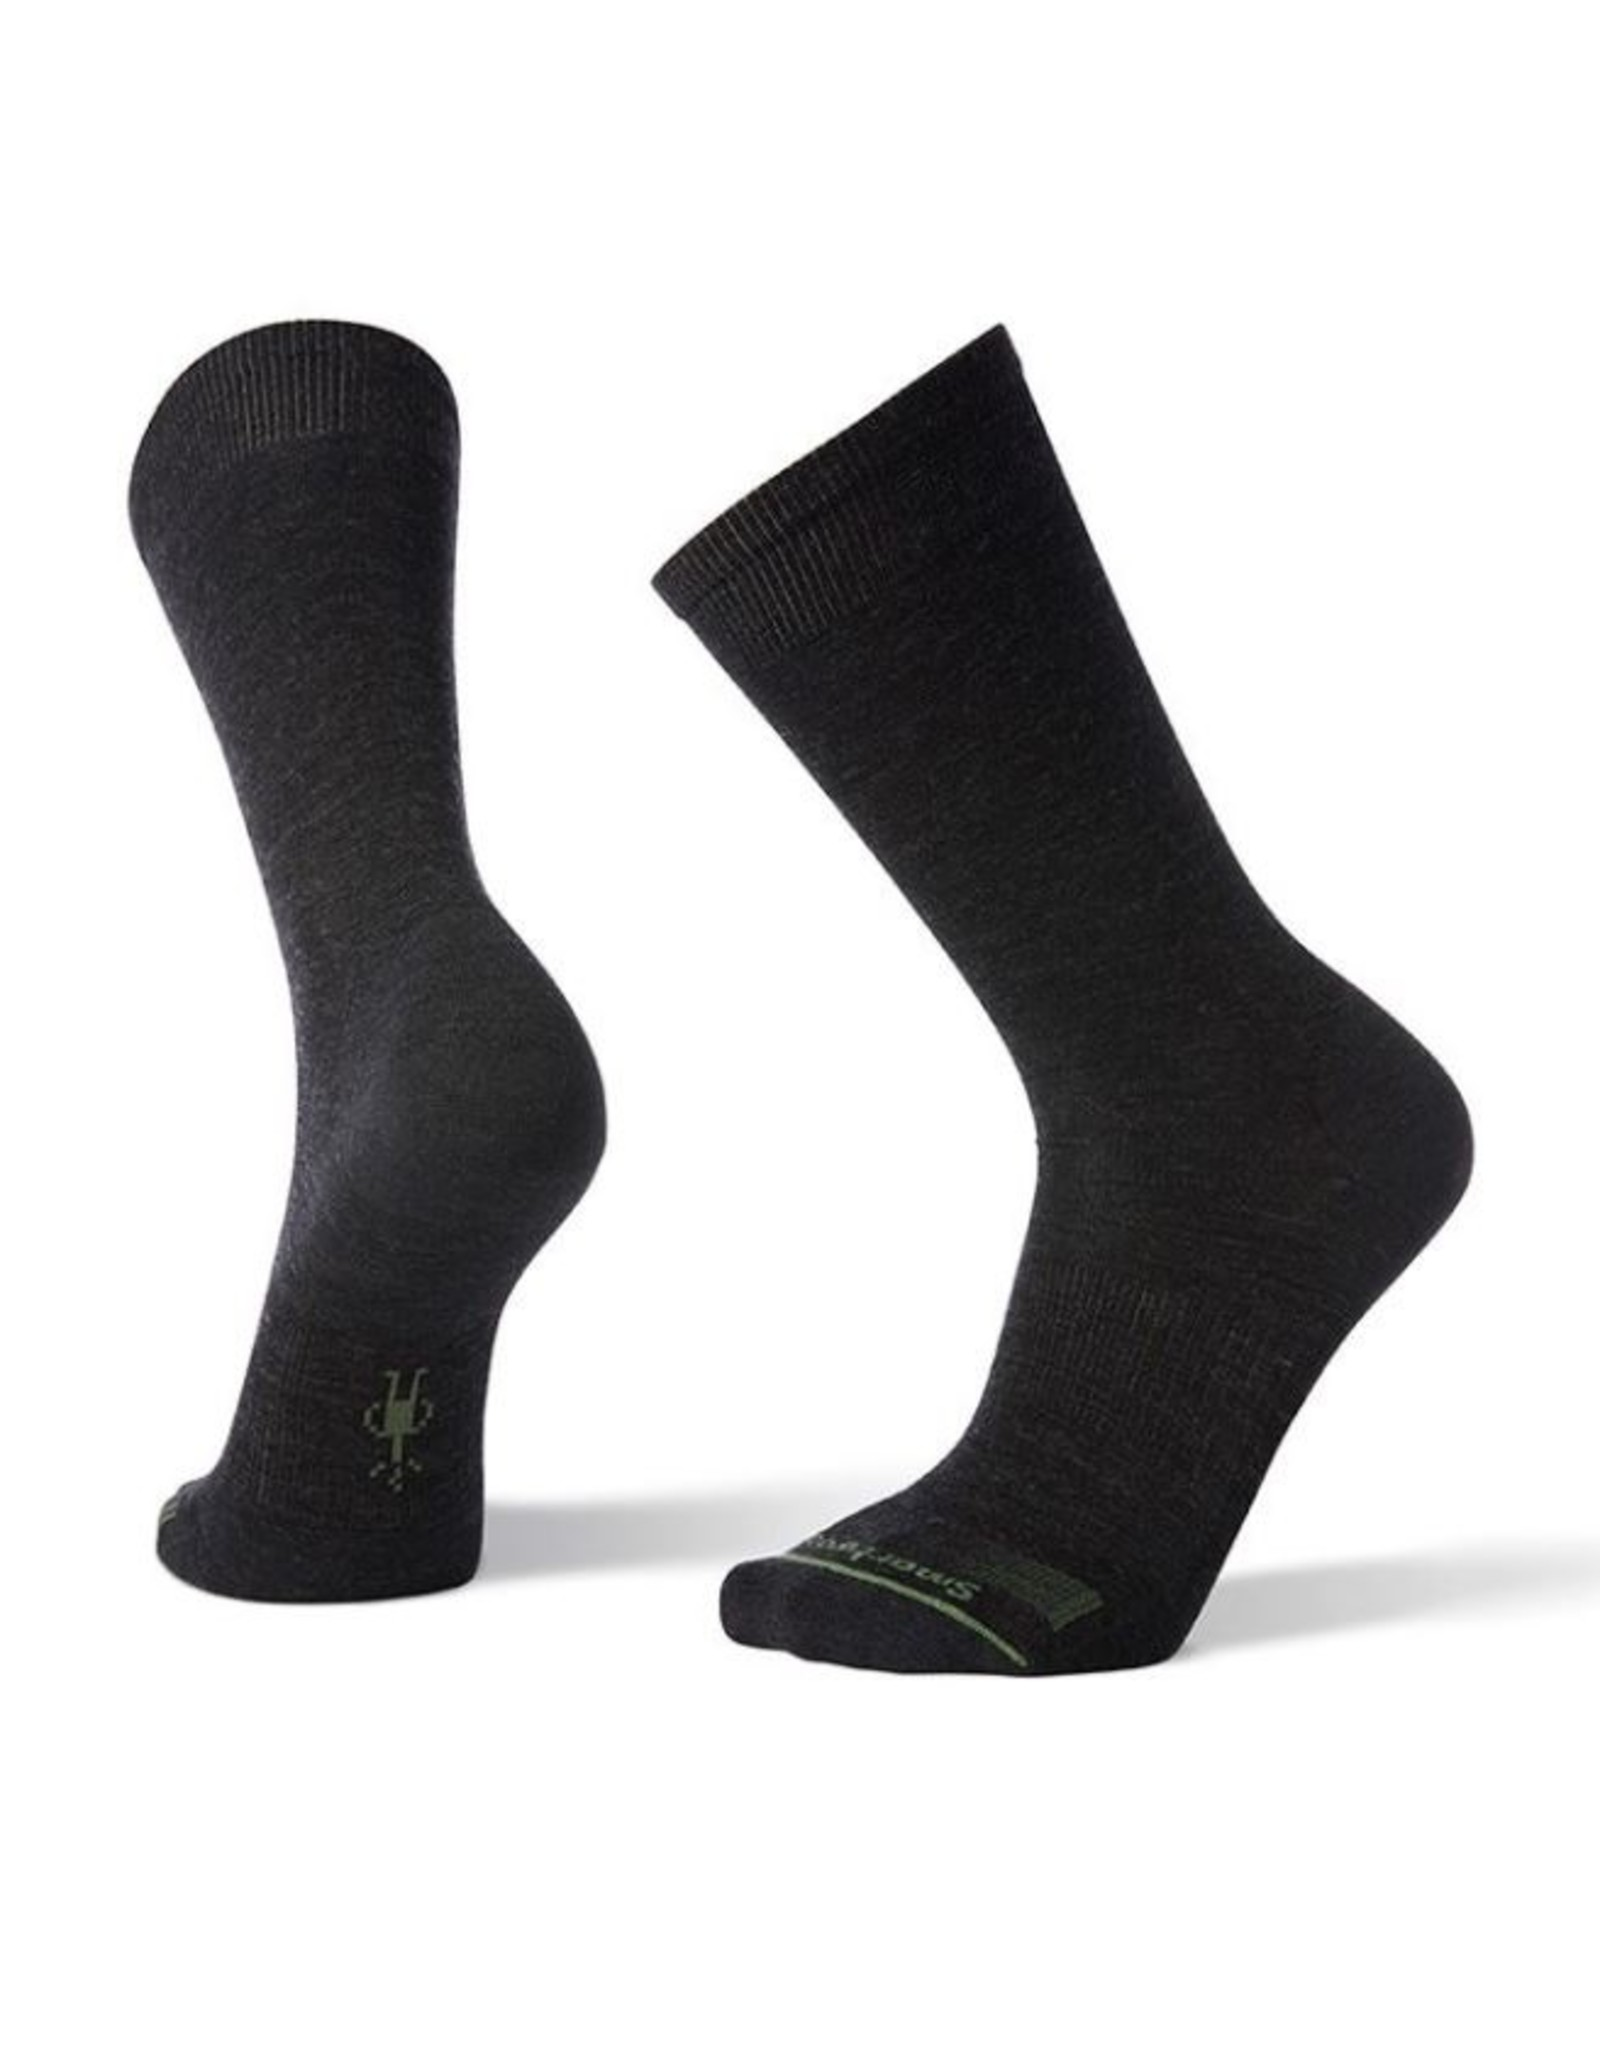 Smartwool Men's Anchor Line Crew